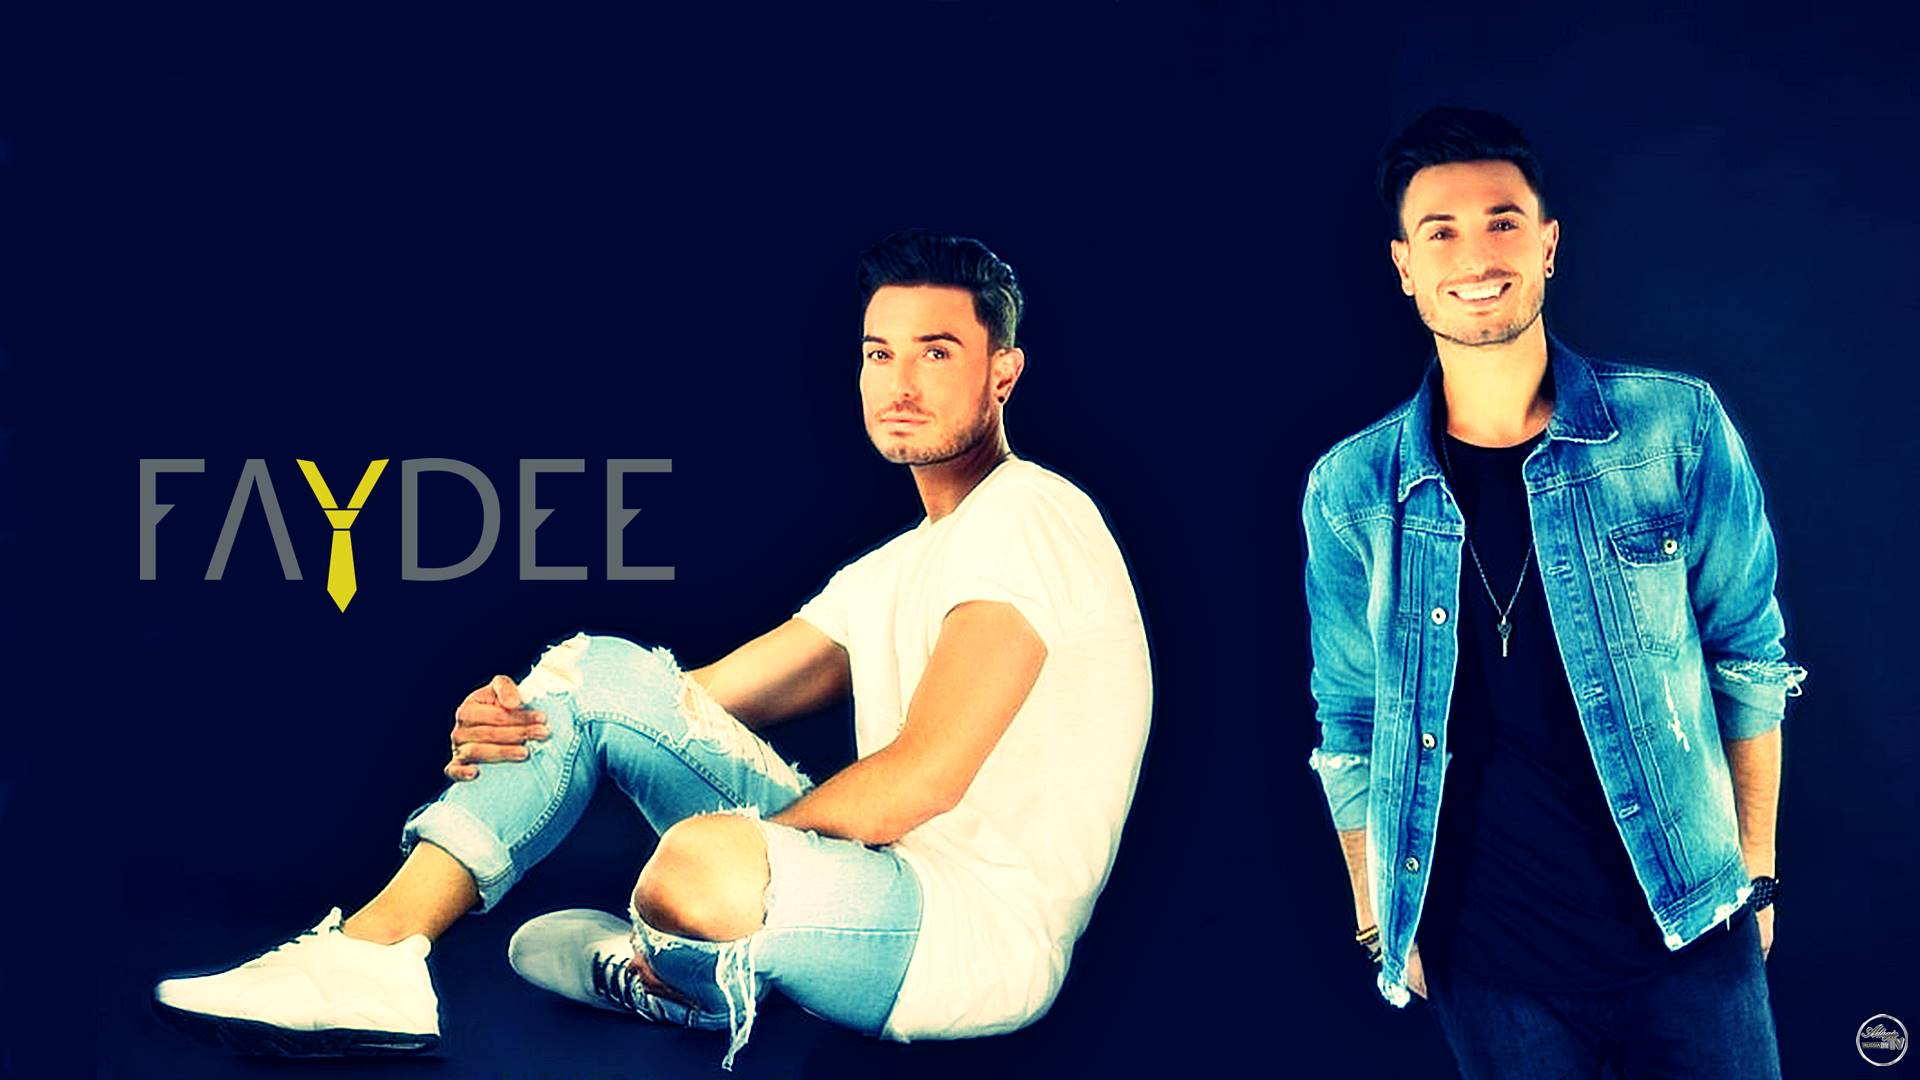 Faydee Was Discovered Online At The Age Of 19 By Ronnie